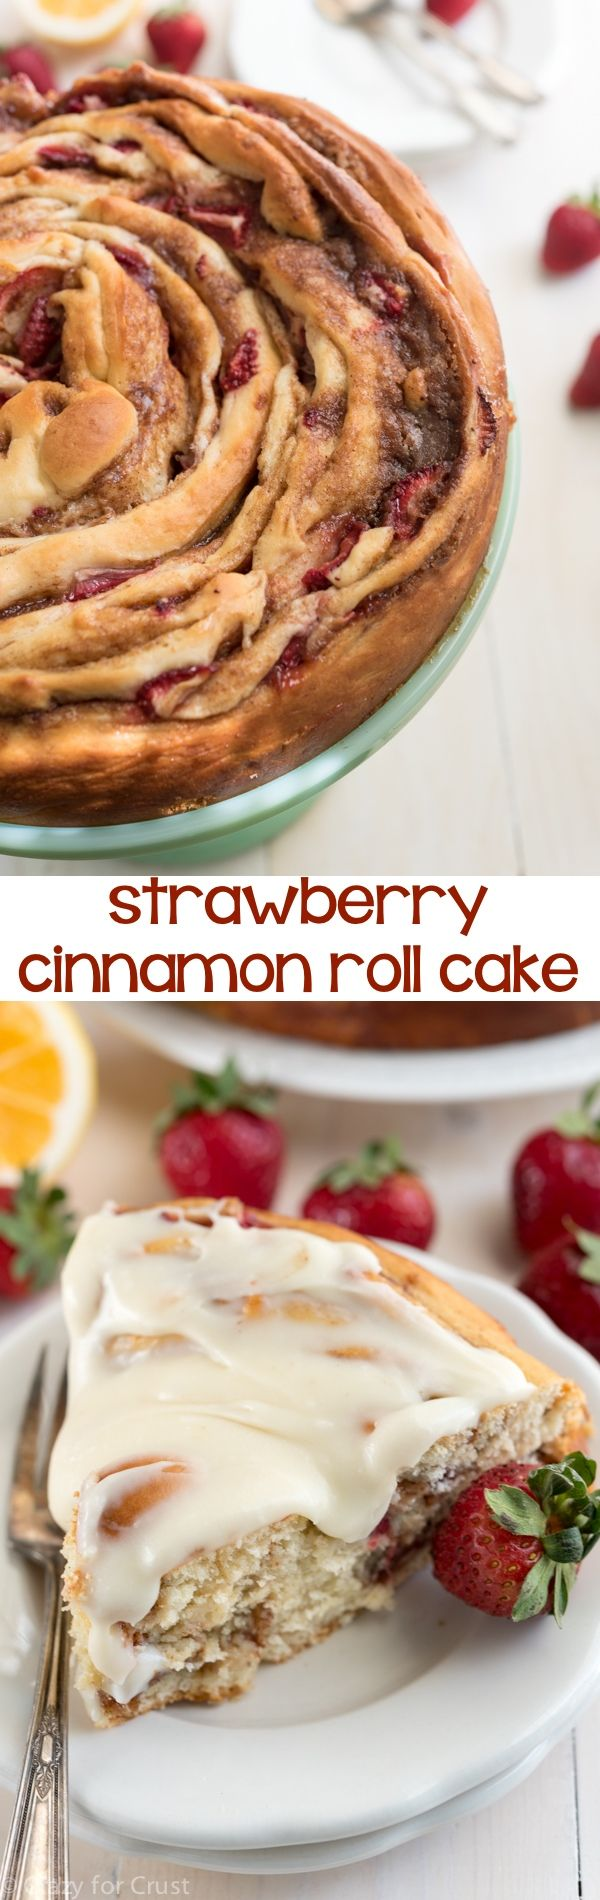 This Giant Strawberry Cinnamon Roll Cake Recipe is perfect for breakfast or brunch. My favorite cinnamon roll recipe is filled with fresh strawberries and then rolled up like a cake and frosted with lemon icing!